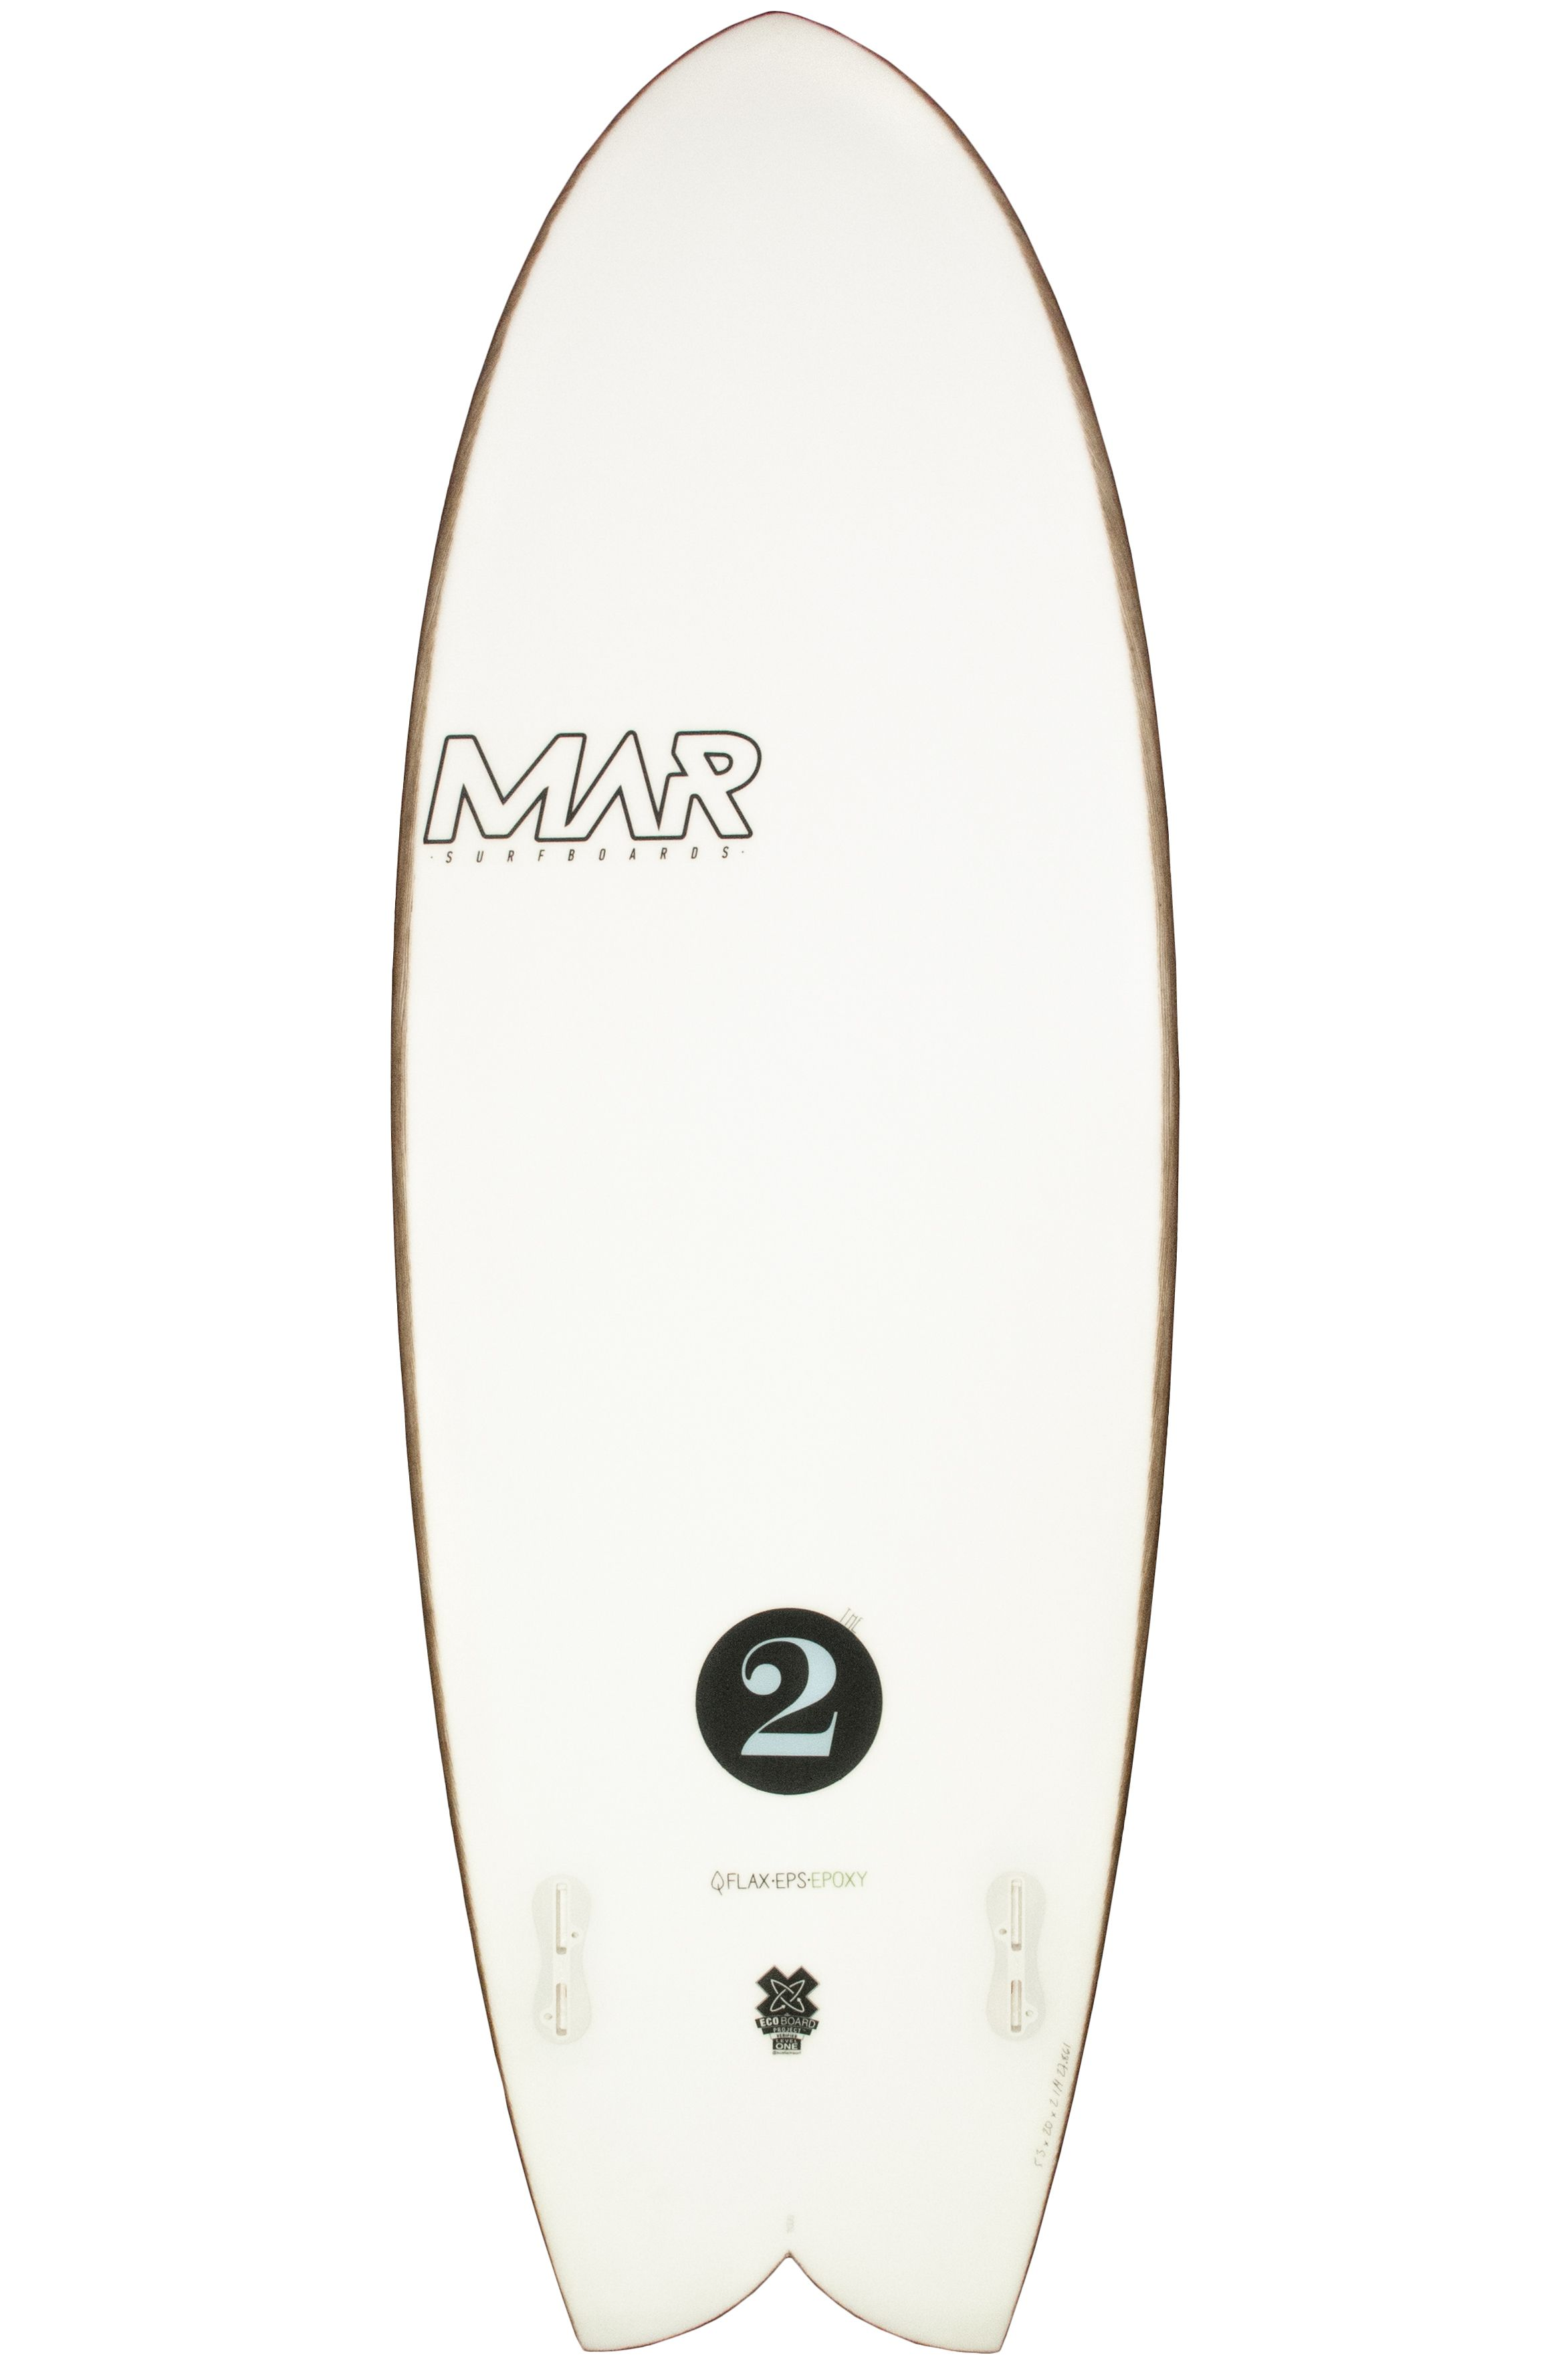 Prancha Surf Mar THE 2 Swallow Tail - Color FCSII Twin 2 tab 5ft6